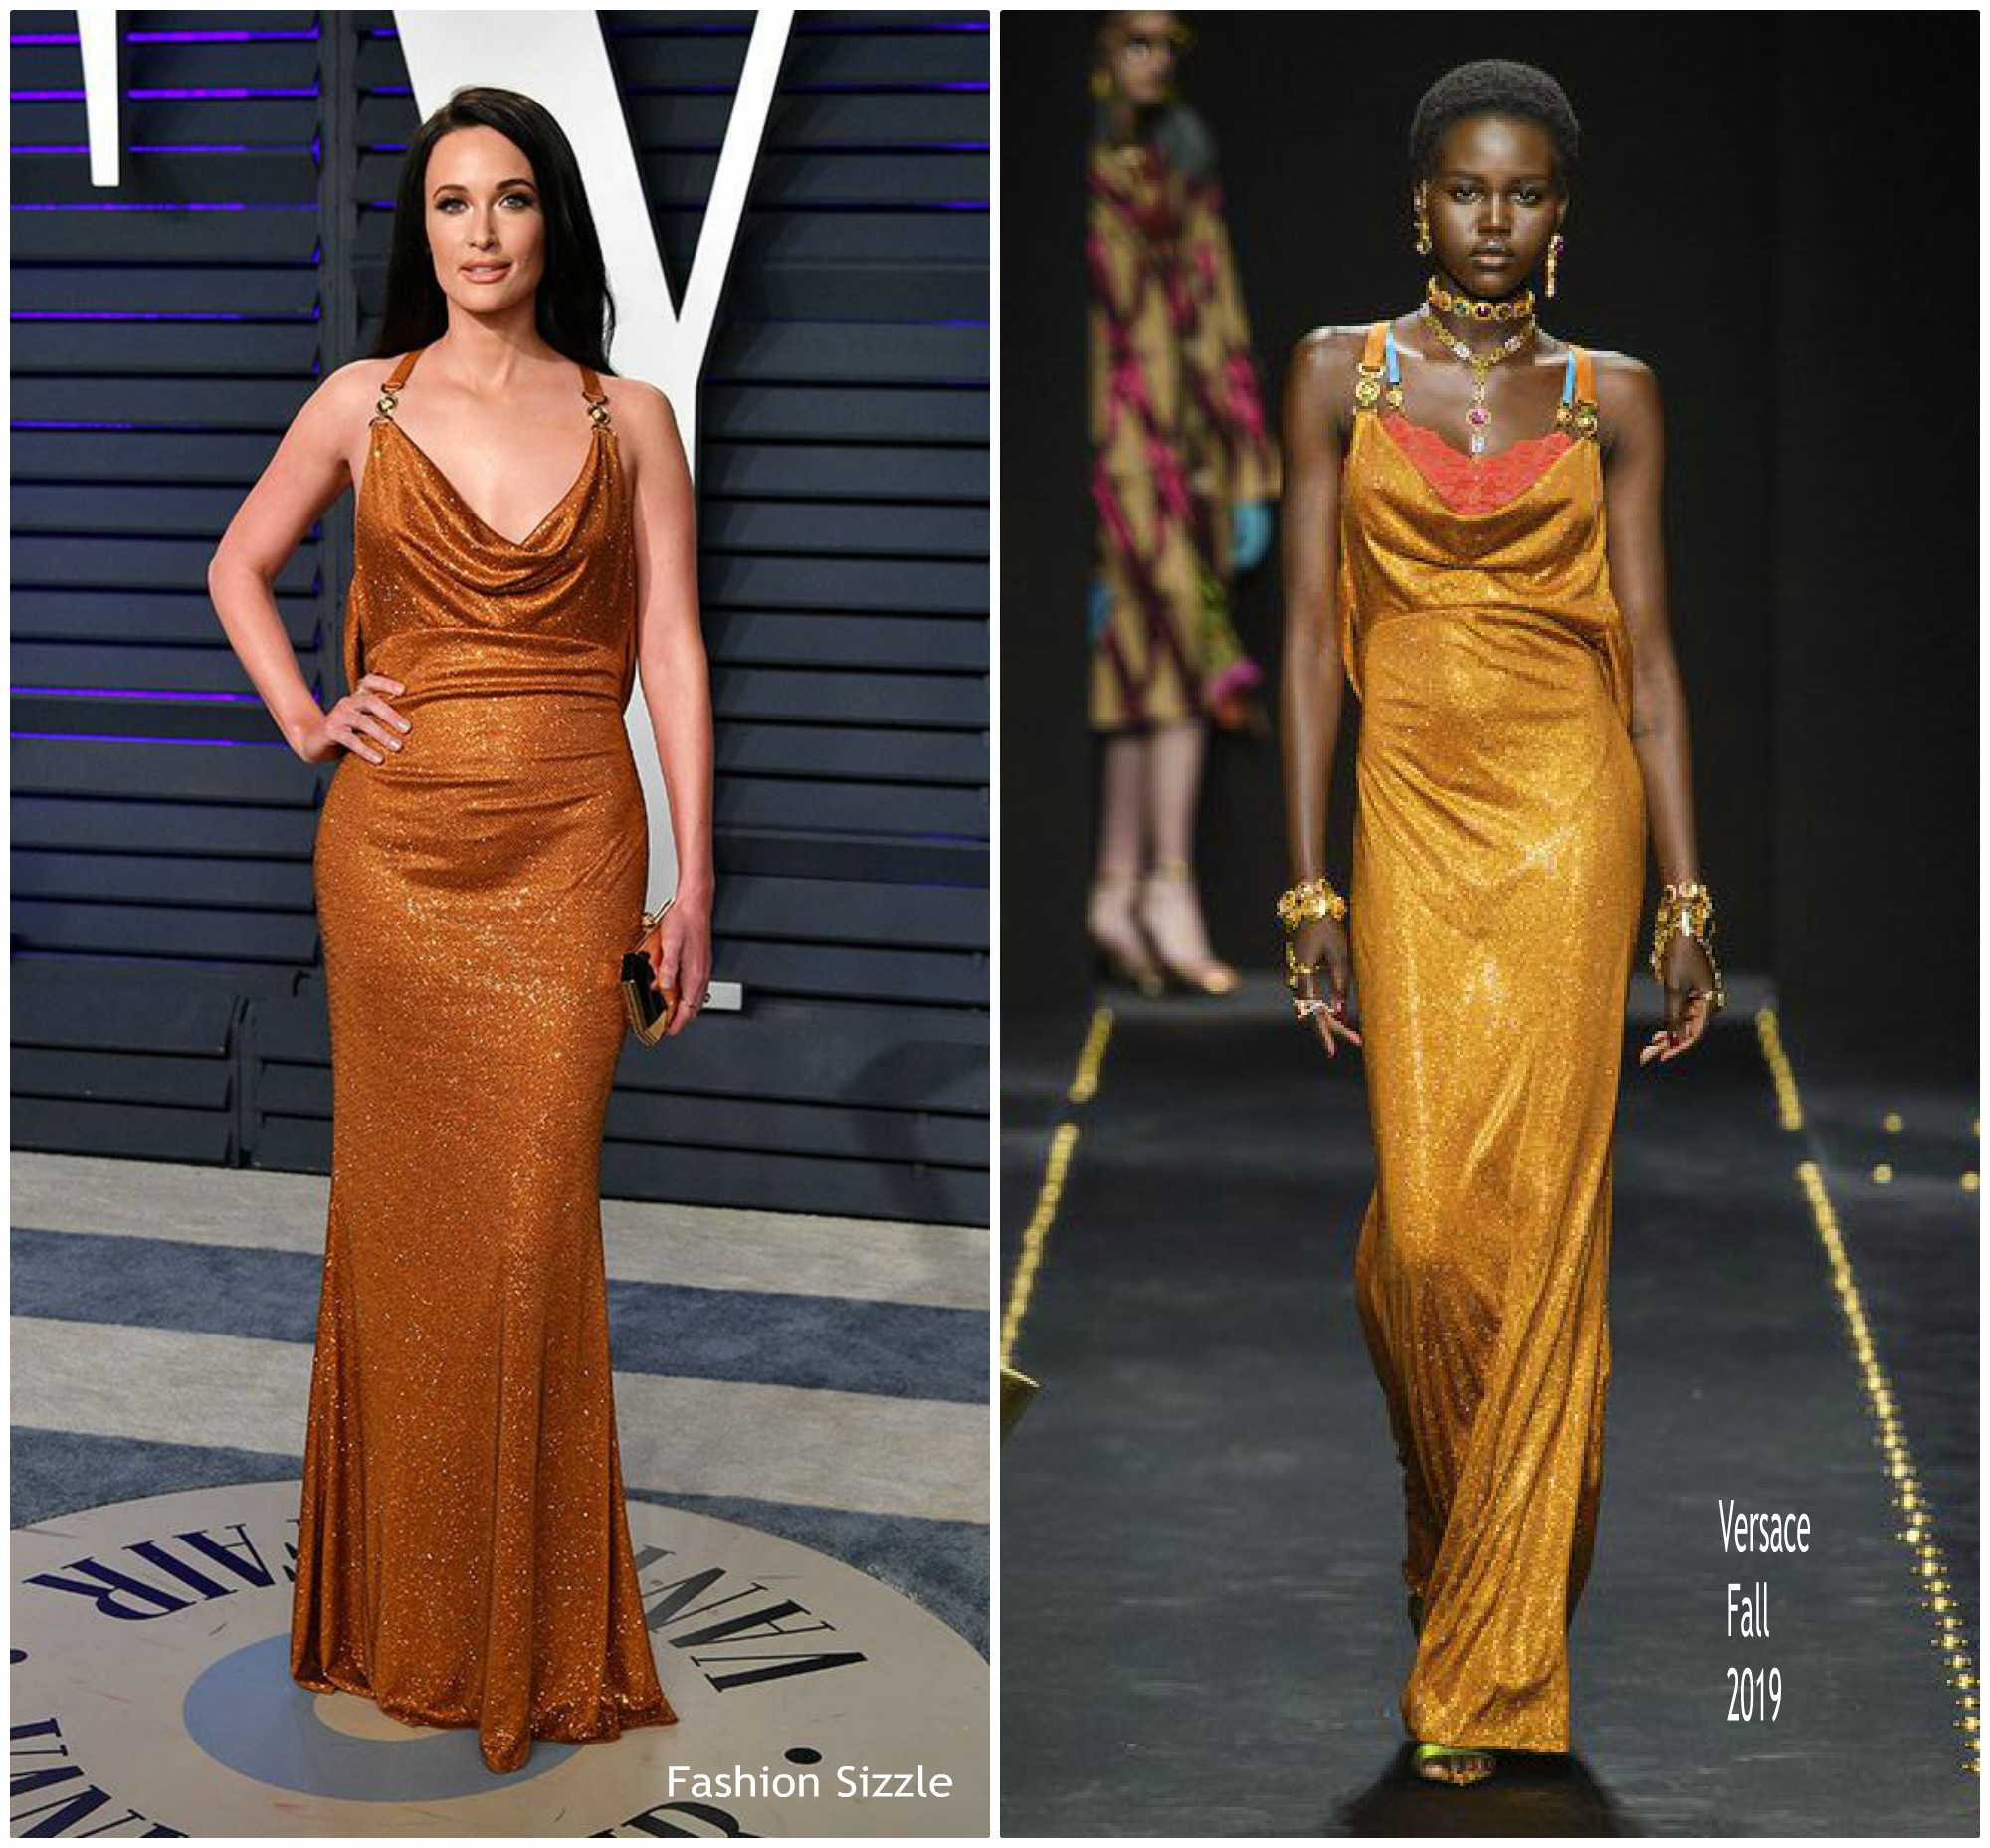 kacey-musgraves-in-versace-2019-vanity-fair-oscar-party